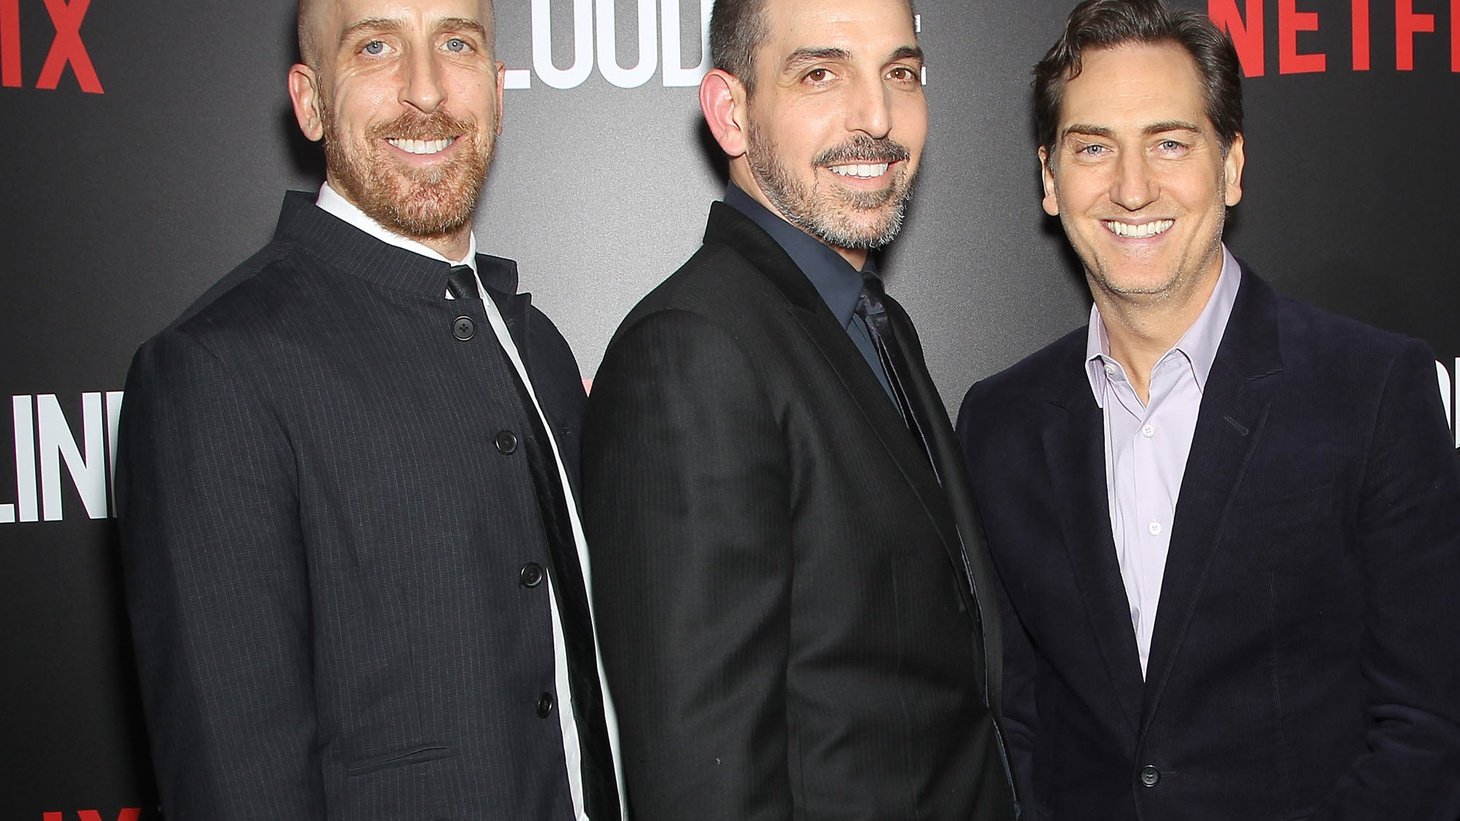 The writing team behind the new Netflix series Bloodline' is a three person collaboration known as KZK. Two of those members, Todd and Glenn Kessler tell us how they, along with Daniel Zelman, crafted a family drama that turns into a thriller in the Florida Keys.